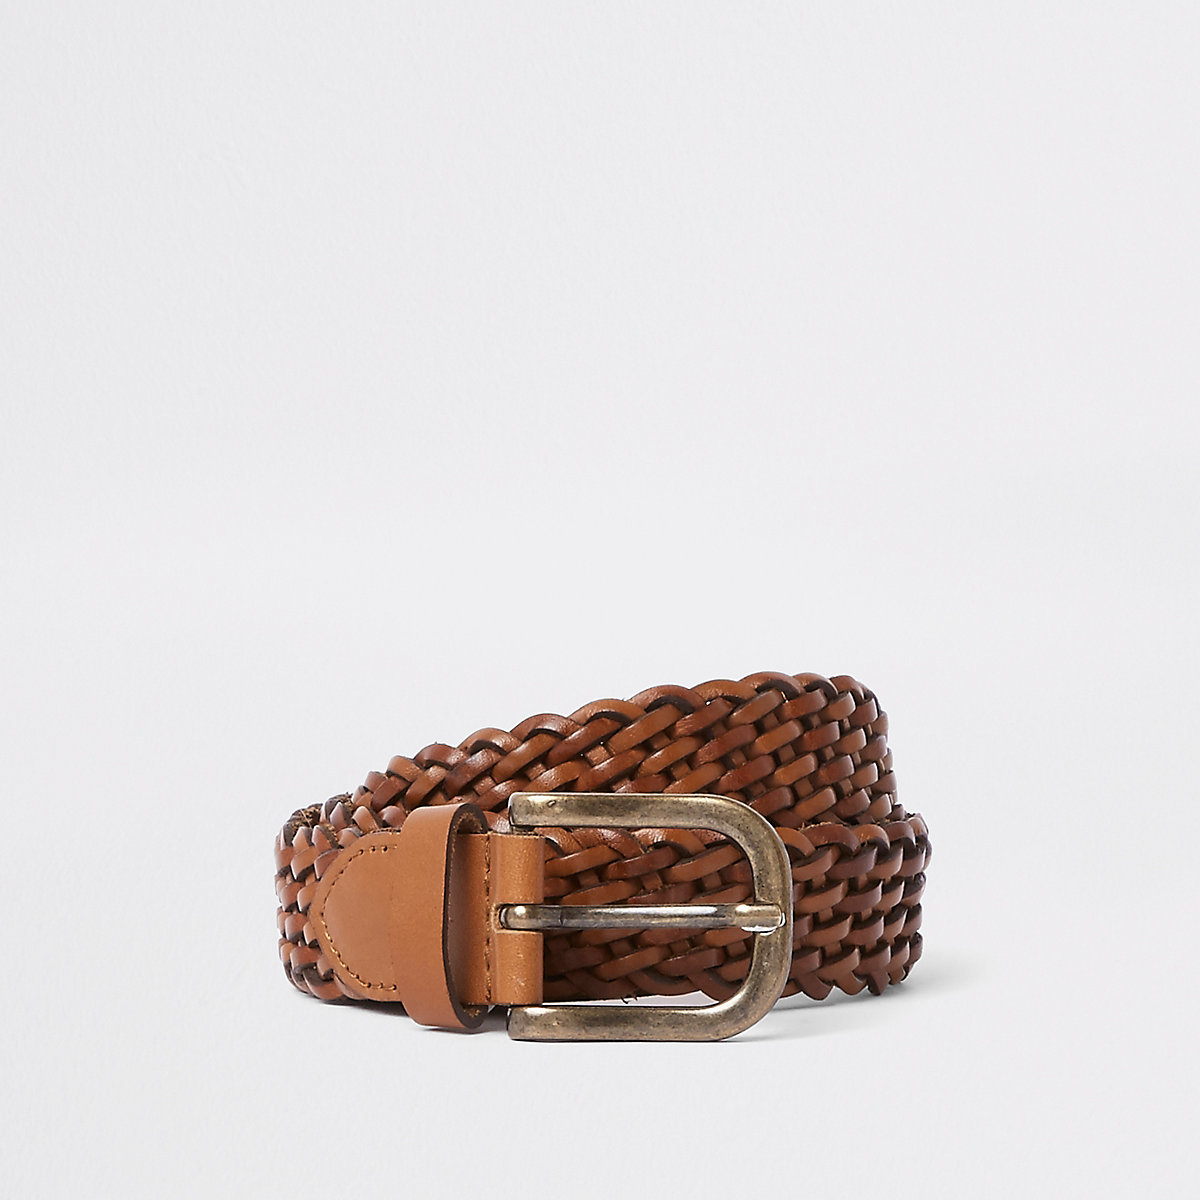 Tan woven leather gold tone buckle belt